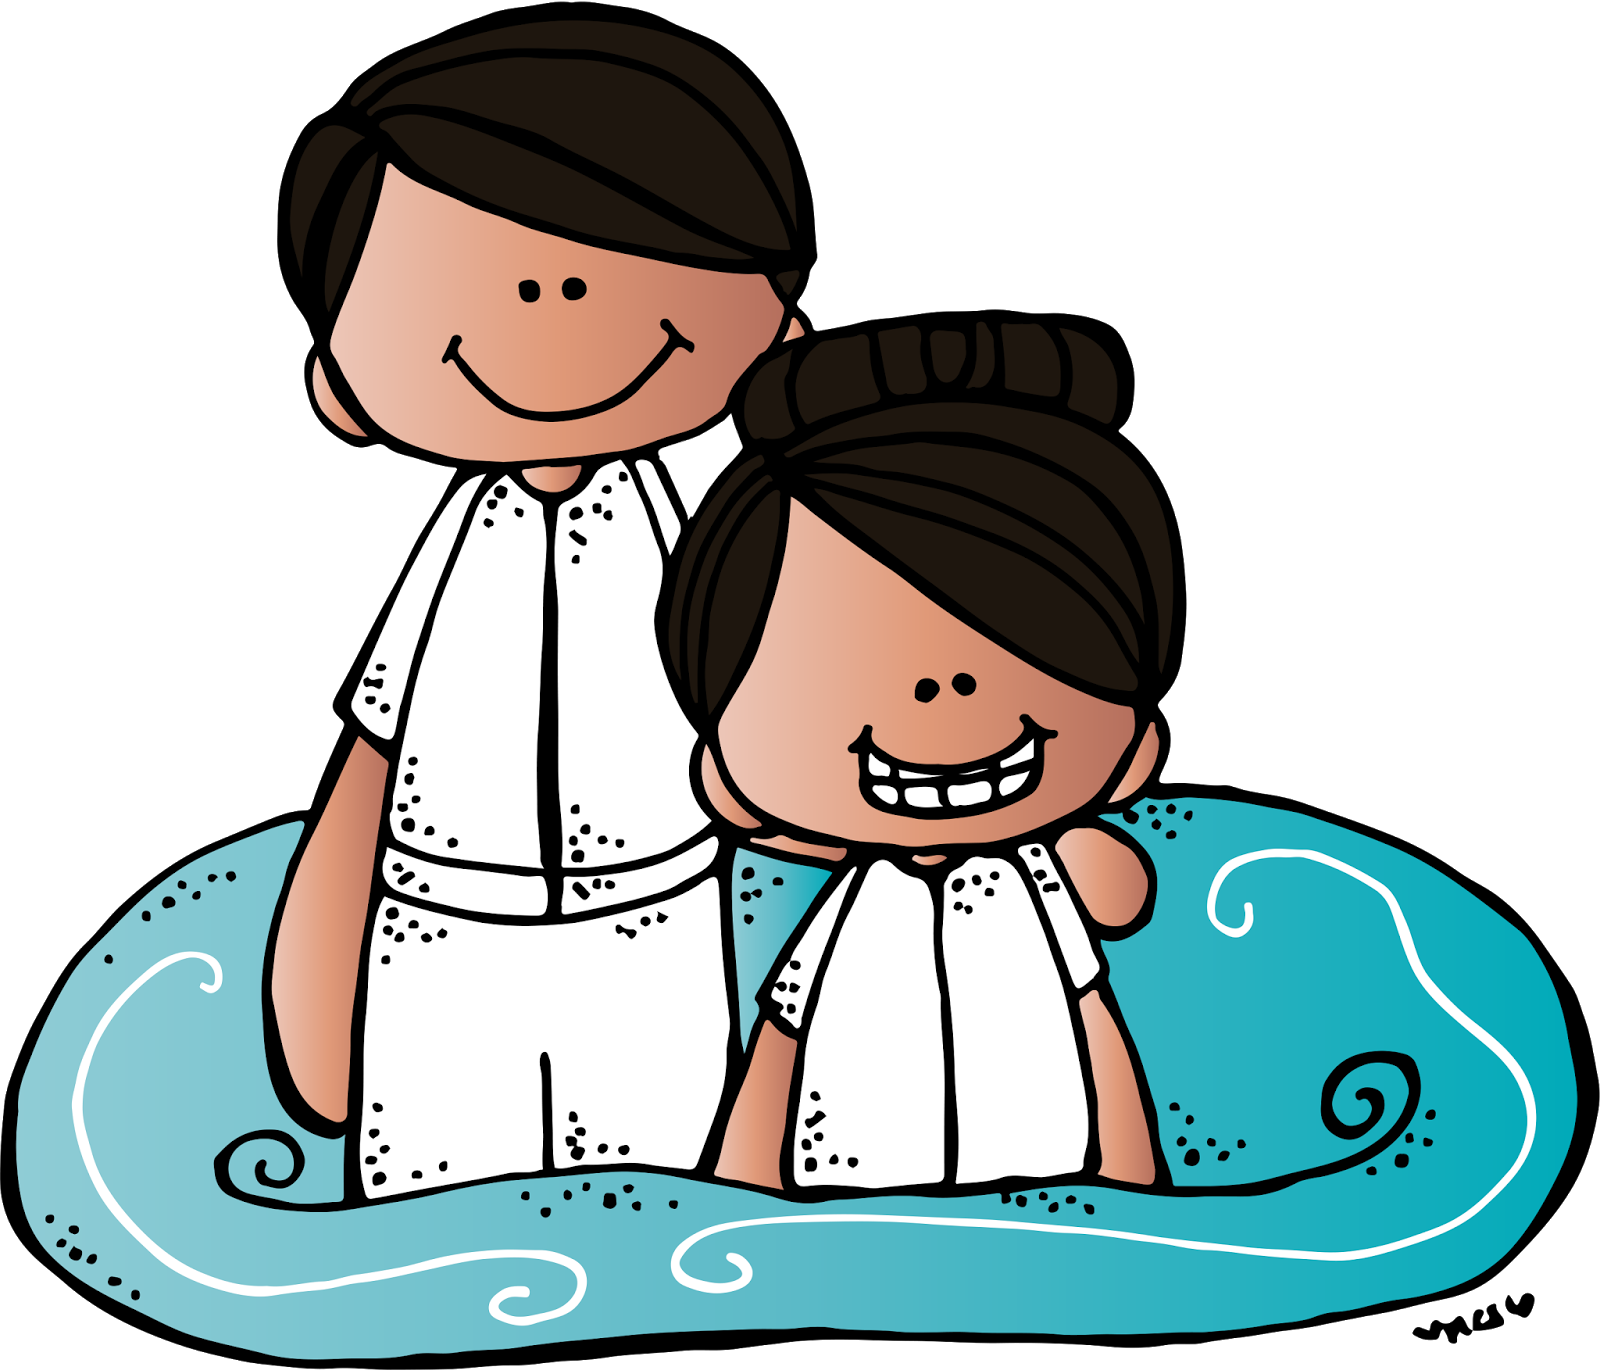 melonheadz lds illustrating more stuff for the new year lds baptism clipart images lds clipart baptism of jesus